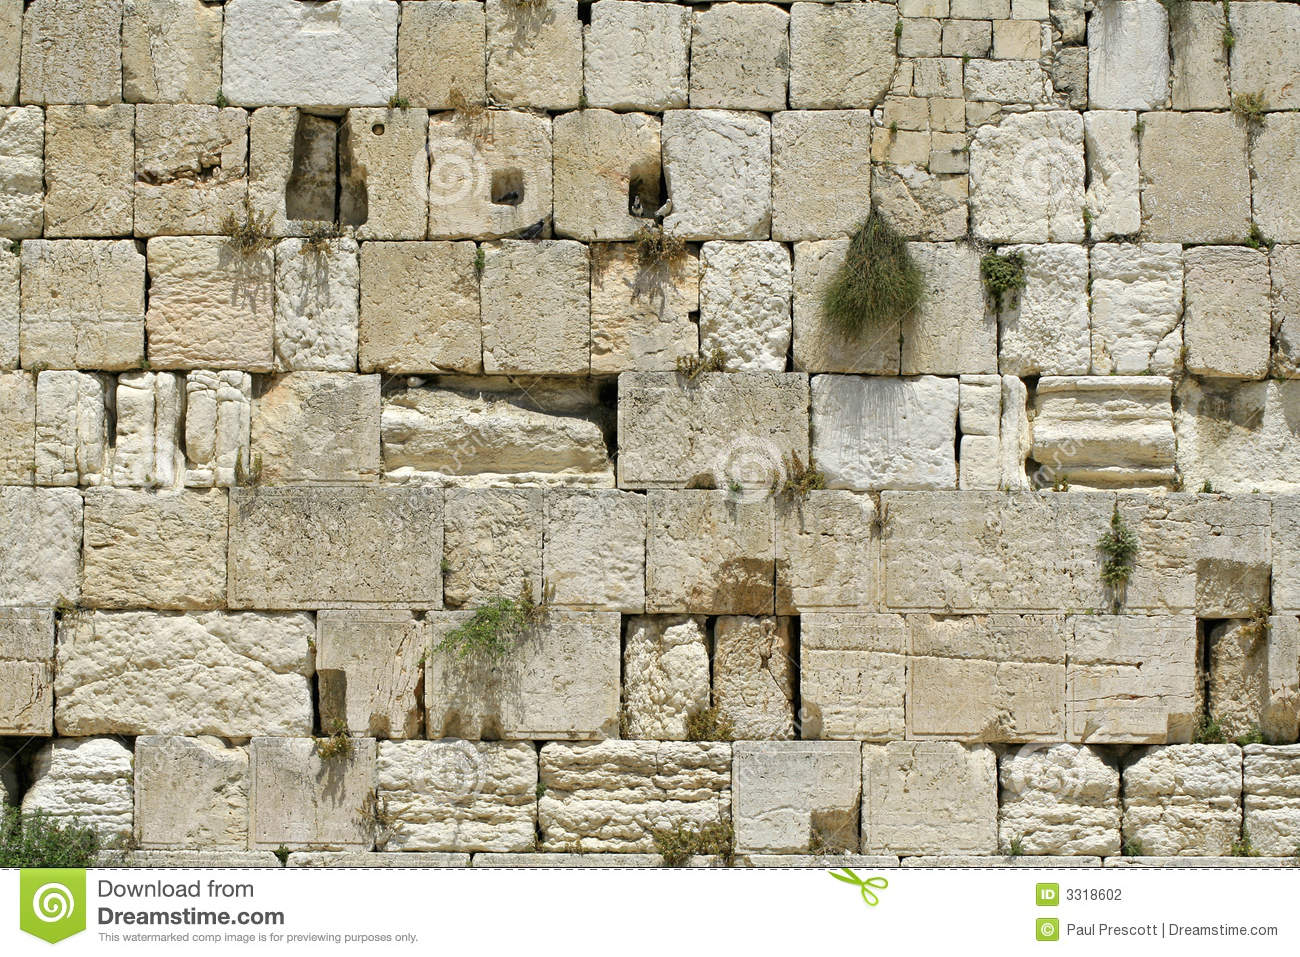 cut-out-wailing-wall-3318602[1]